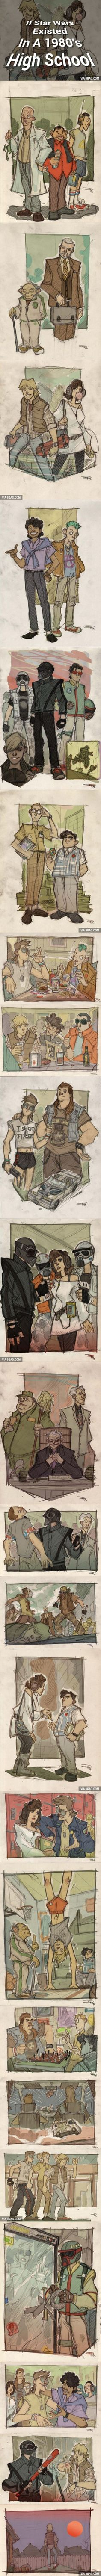 If Star Wars Existed In A 1980′s High School. I know I've pinned this before but what great costume inspiration!